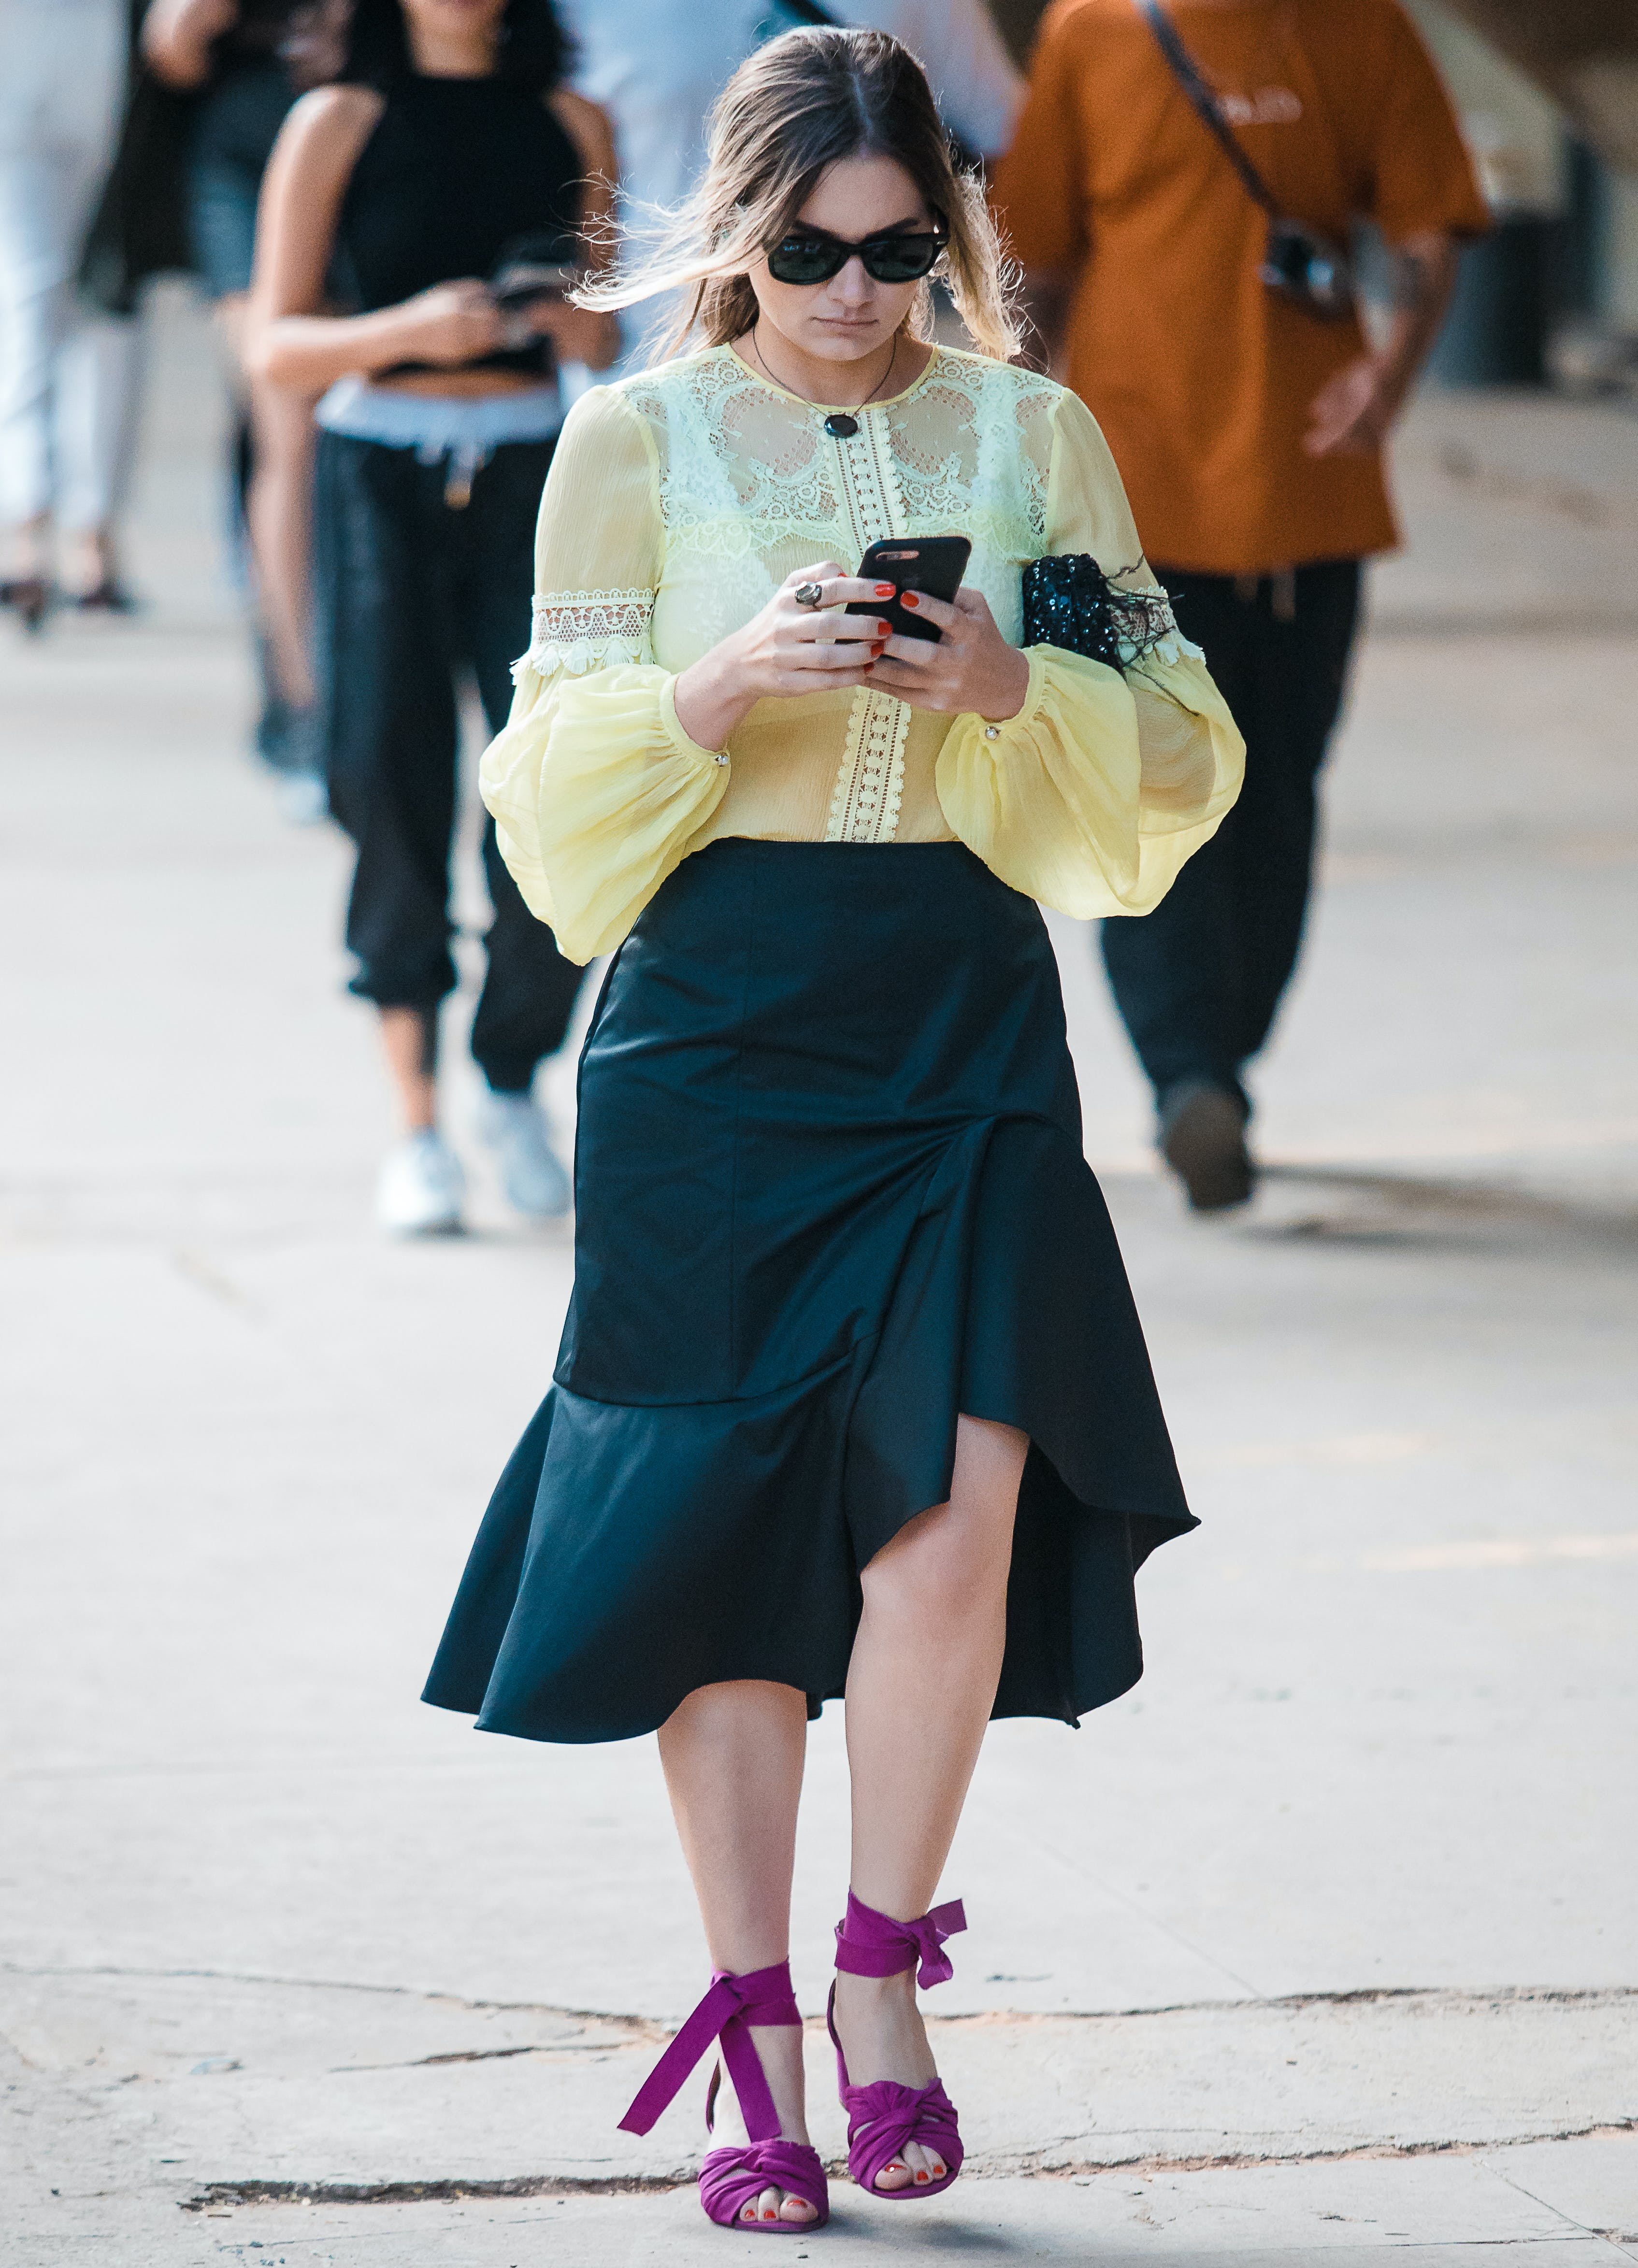 a woman wearing a yellow top and purple sandals